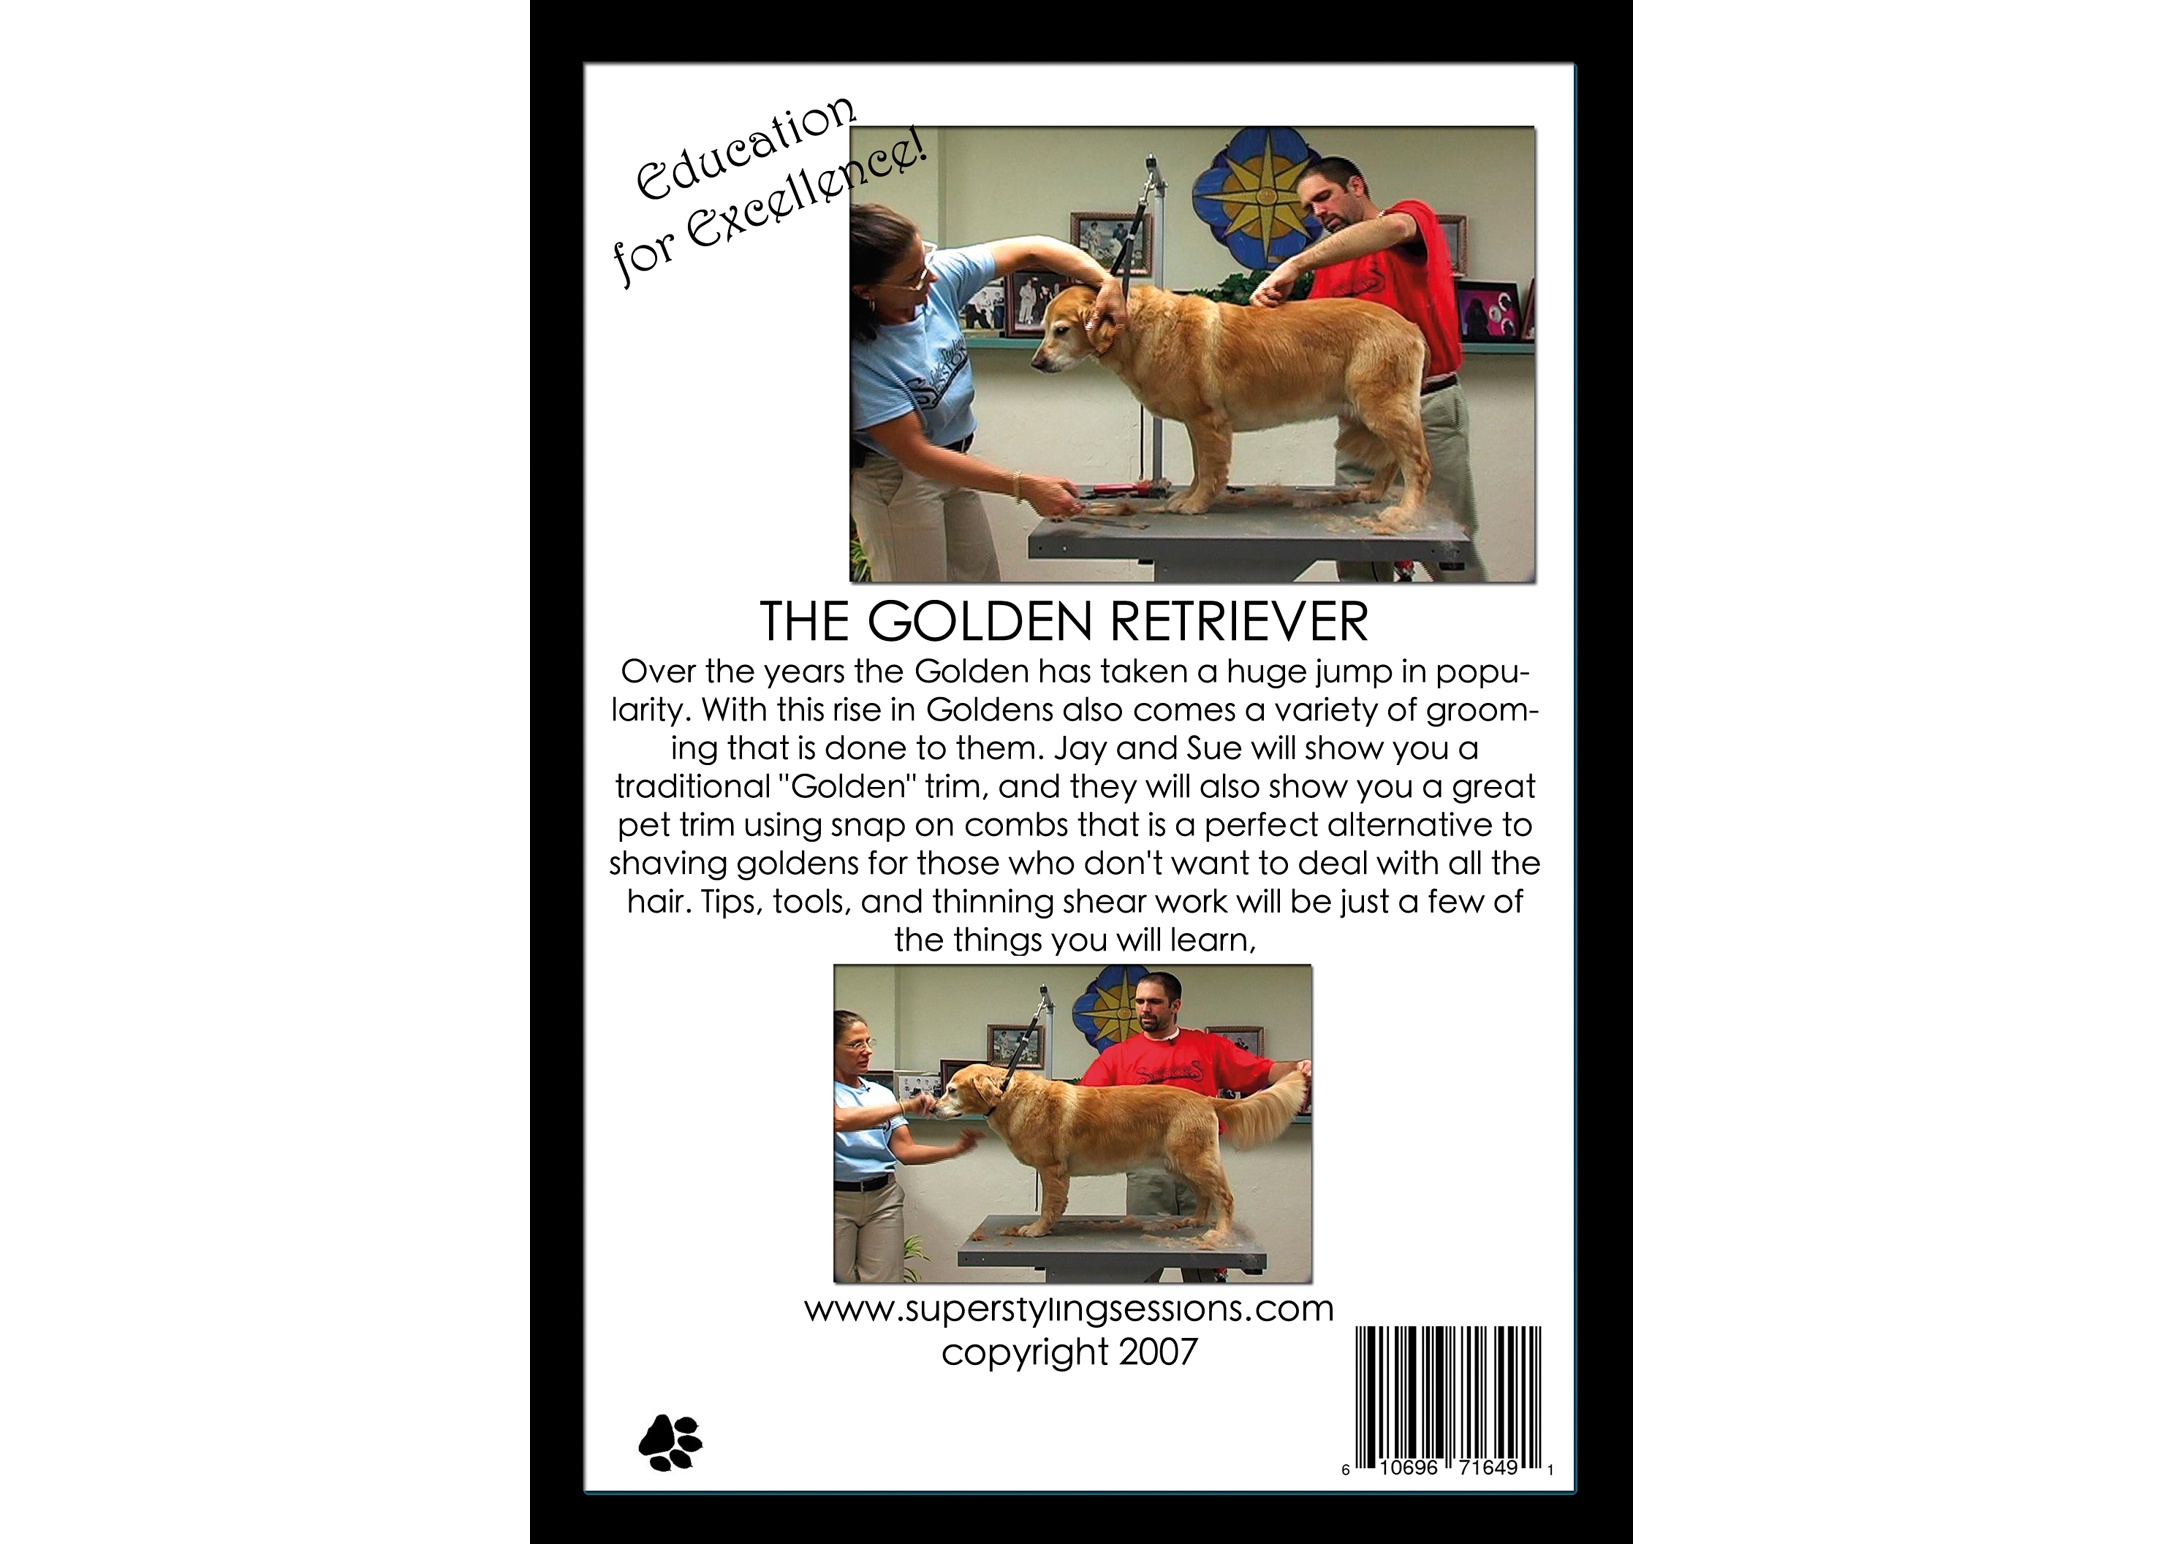 Super Styling Sessions DVD Super Styling Sessions Golden Retriever Educational DVD